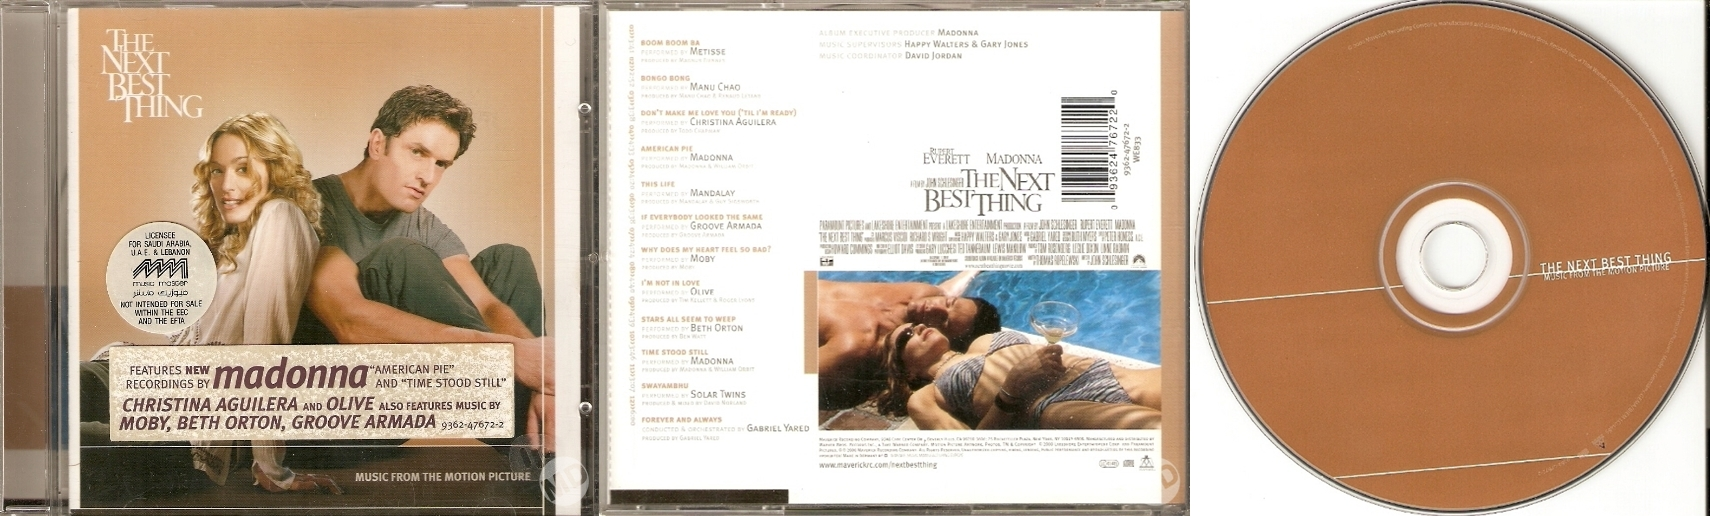 madonna the next best thing soundtrack cd arabia